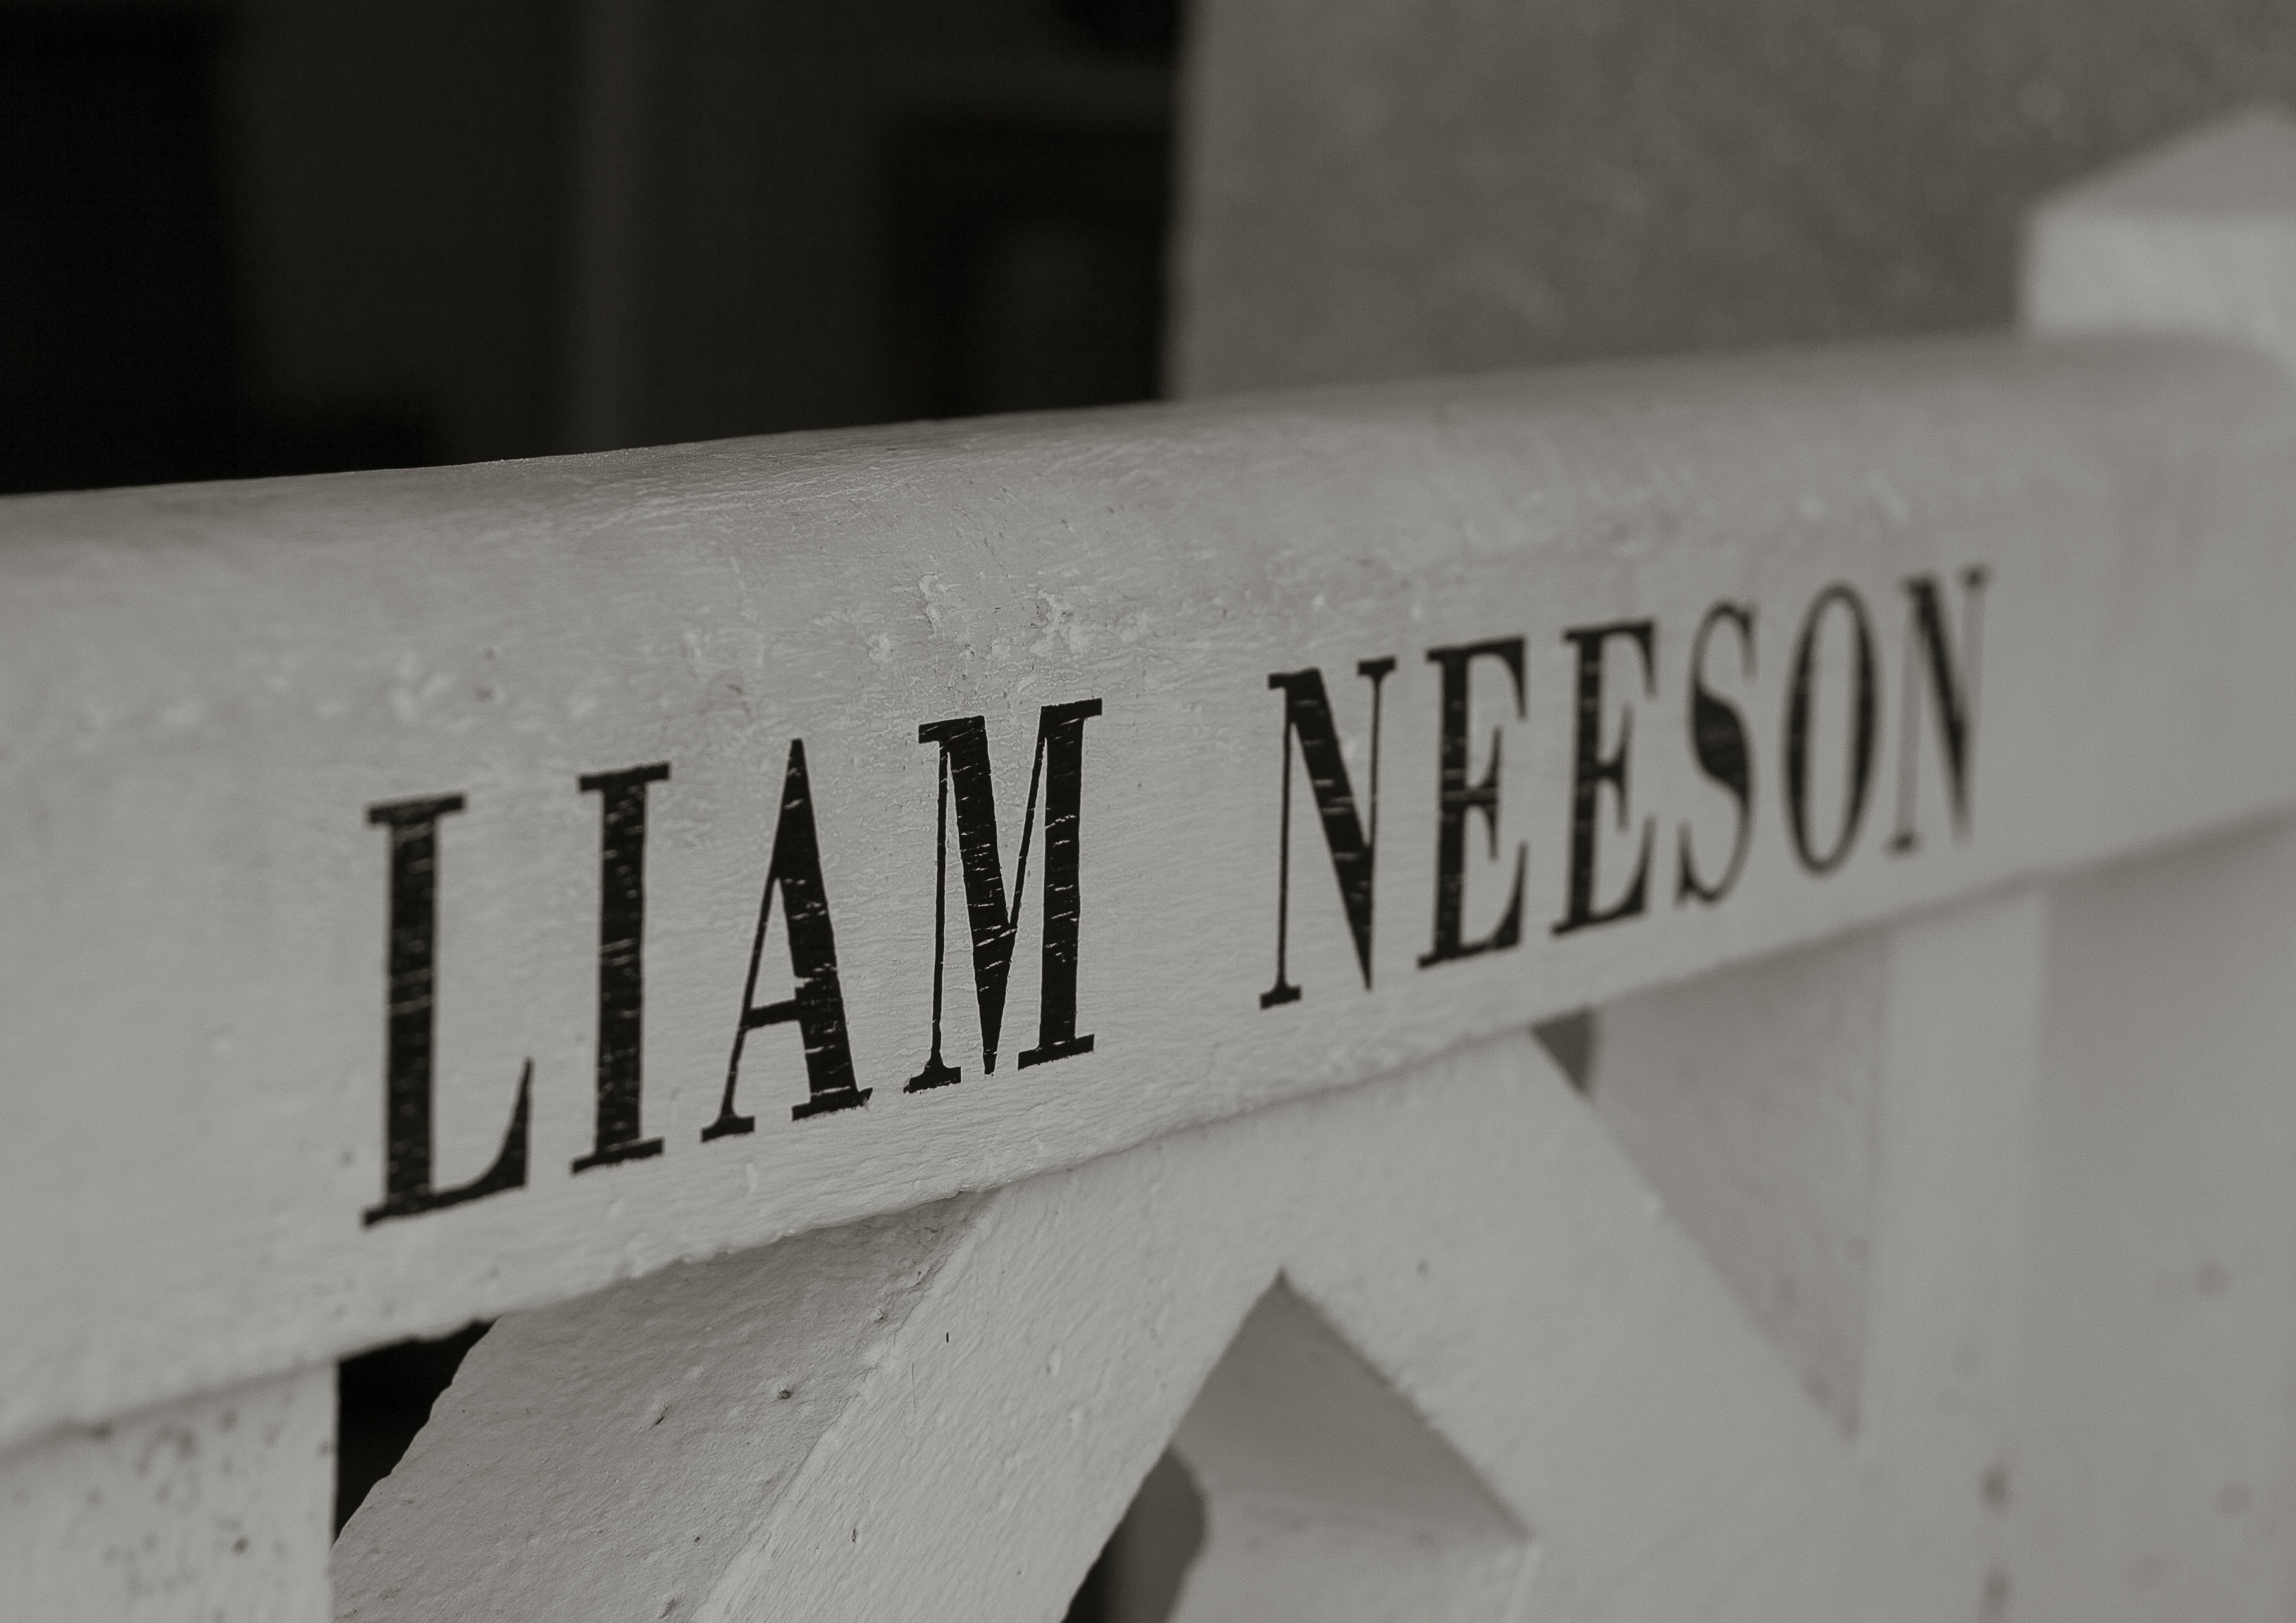 Liam Neeson-printed post